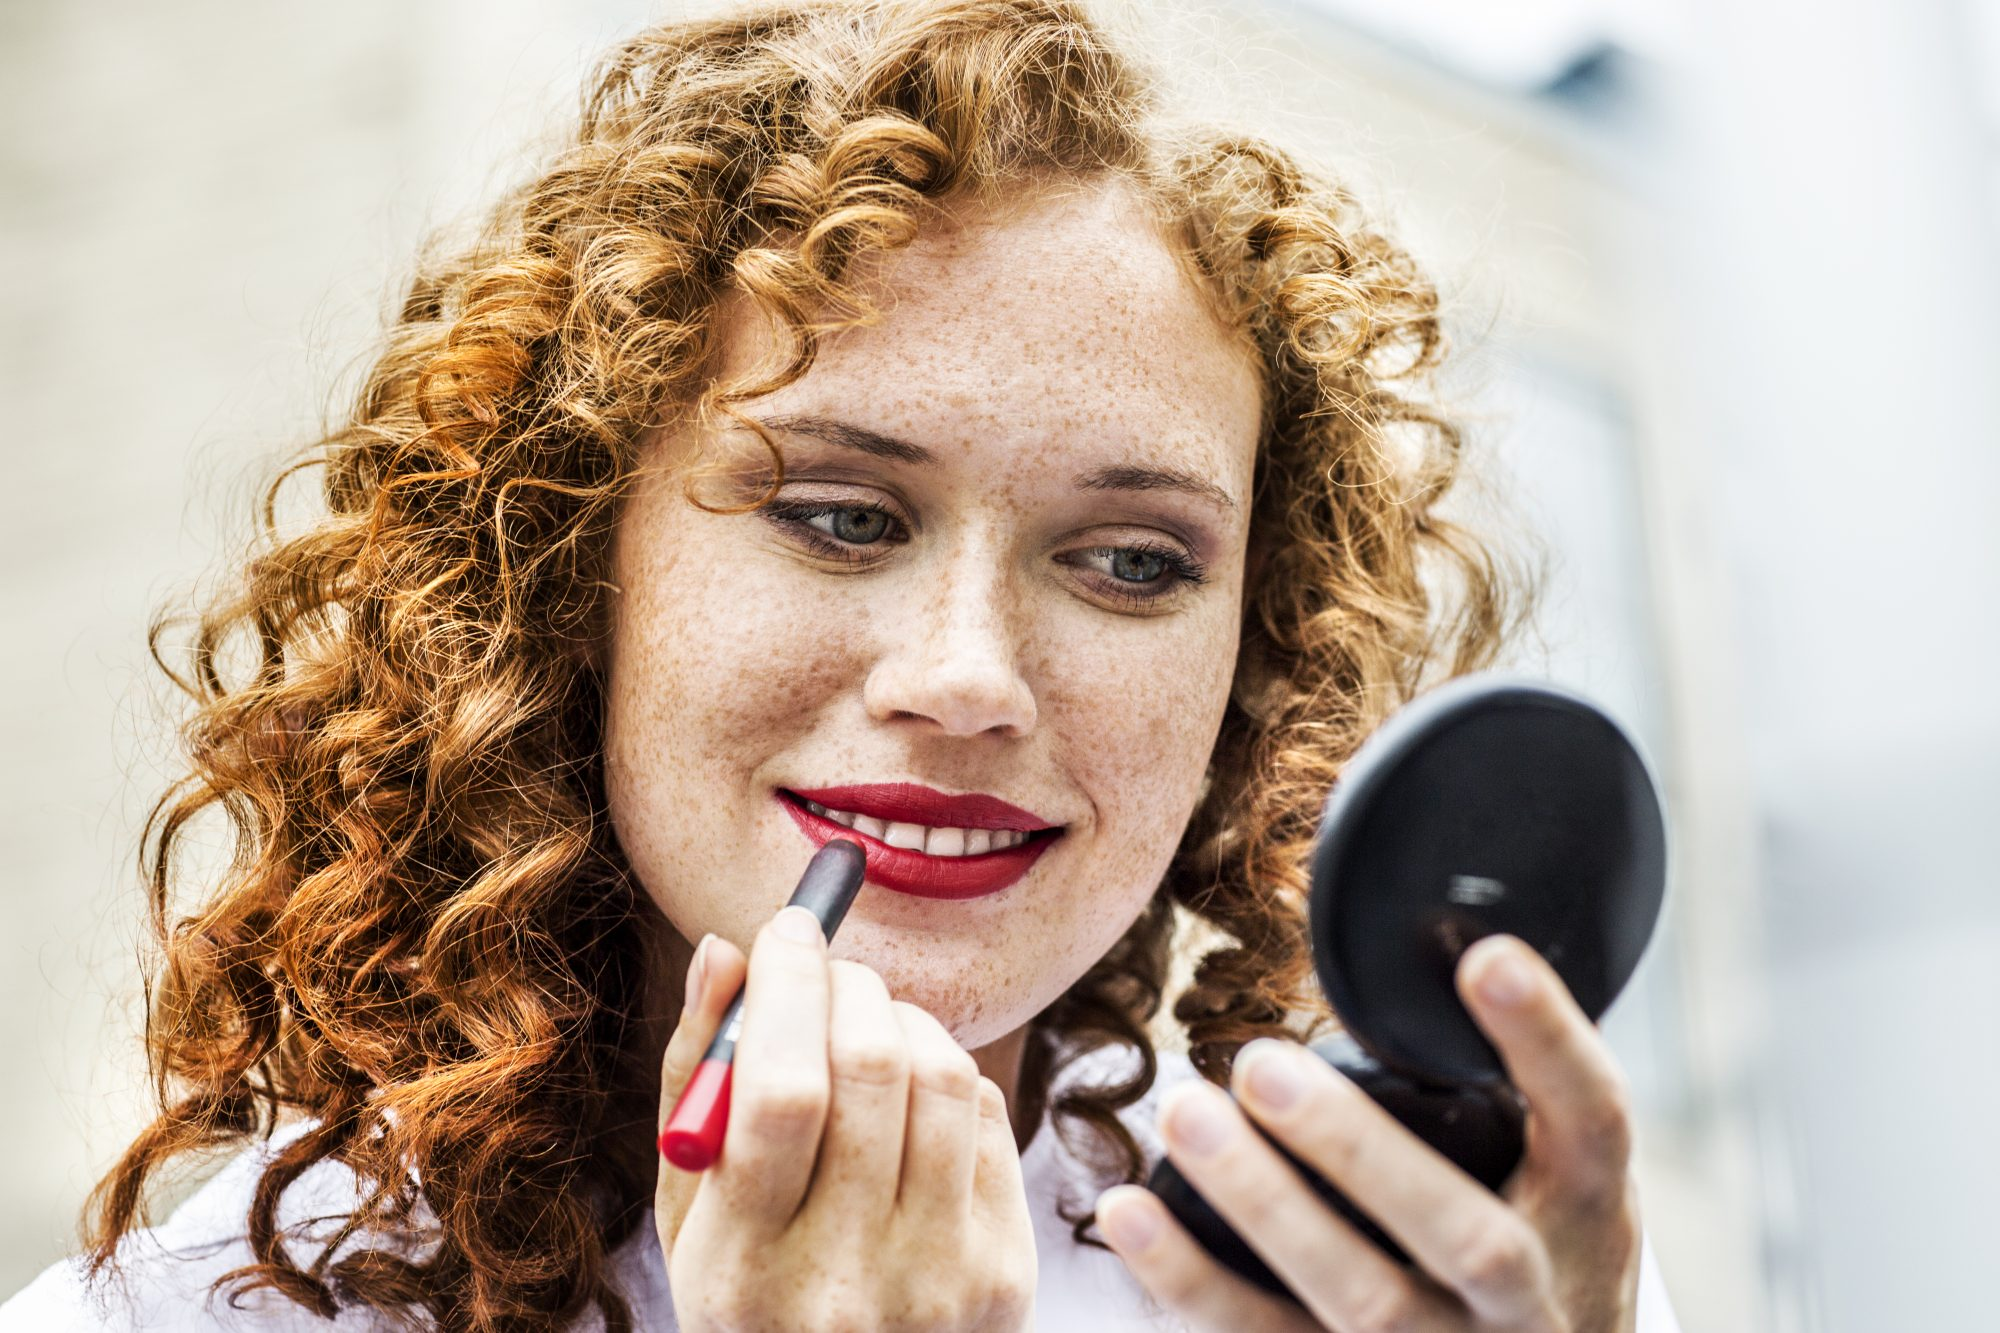 girl putting on lipstick